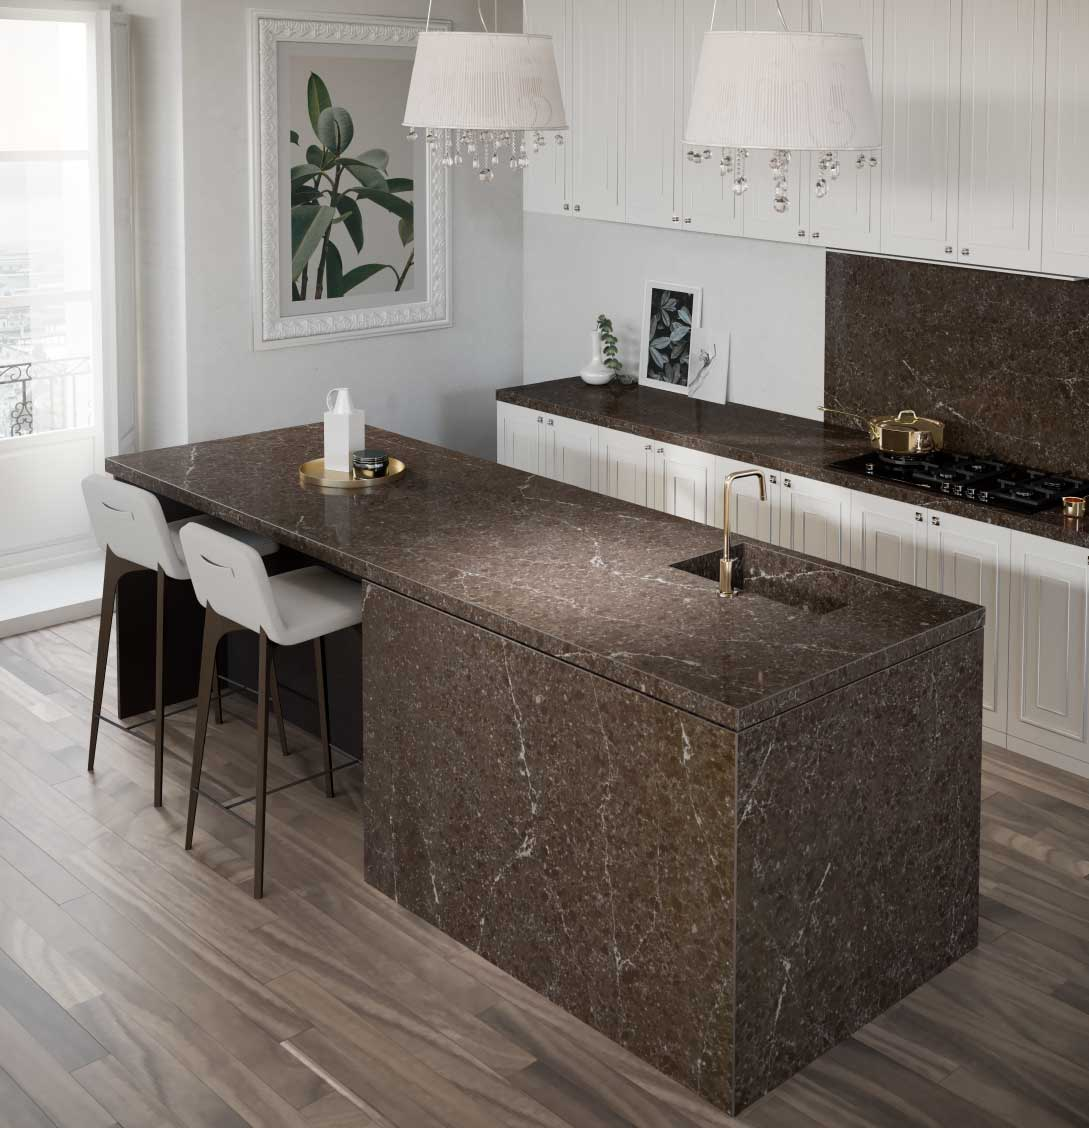 Silestone Eternal Emperador quartz countertop kitchen